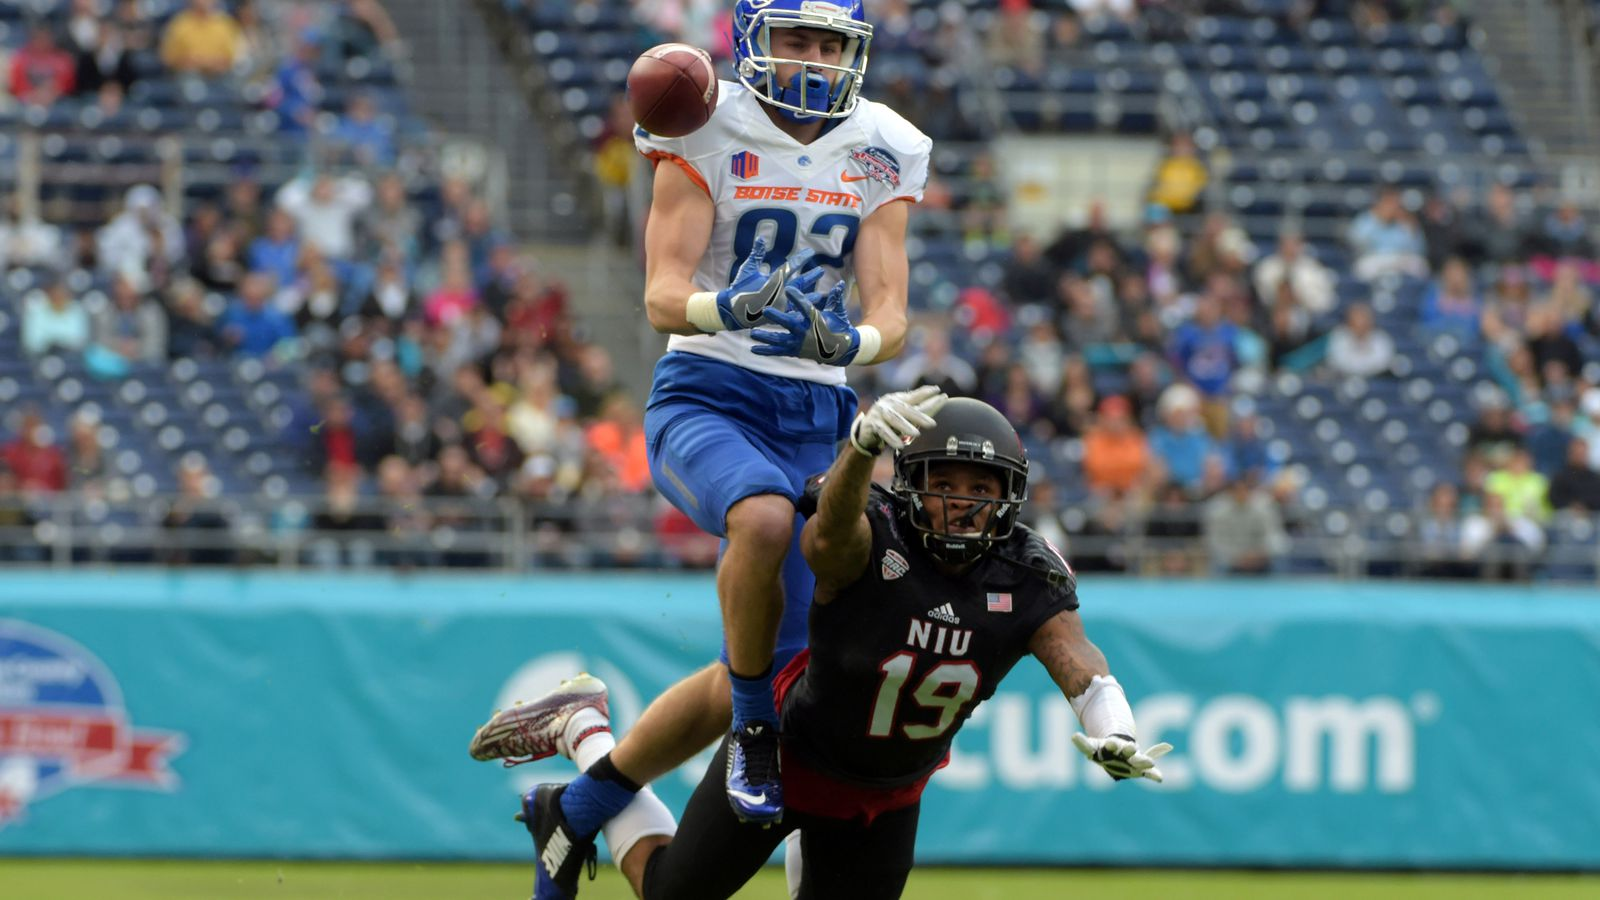 """Official: Thomas Sperbeck made """"catch of the year"""" against ..."""